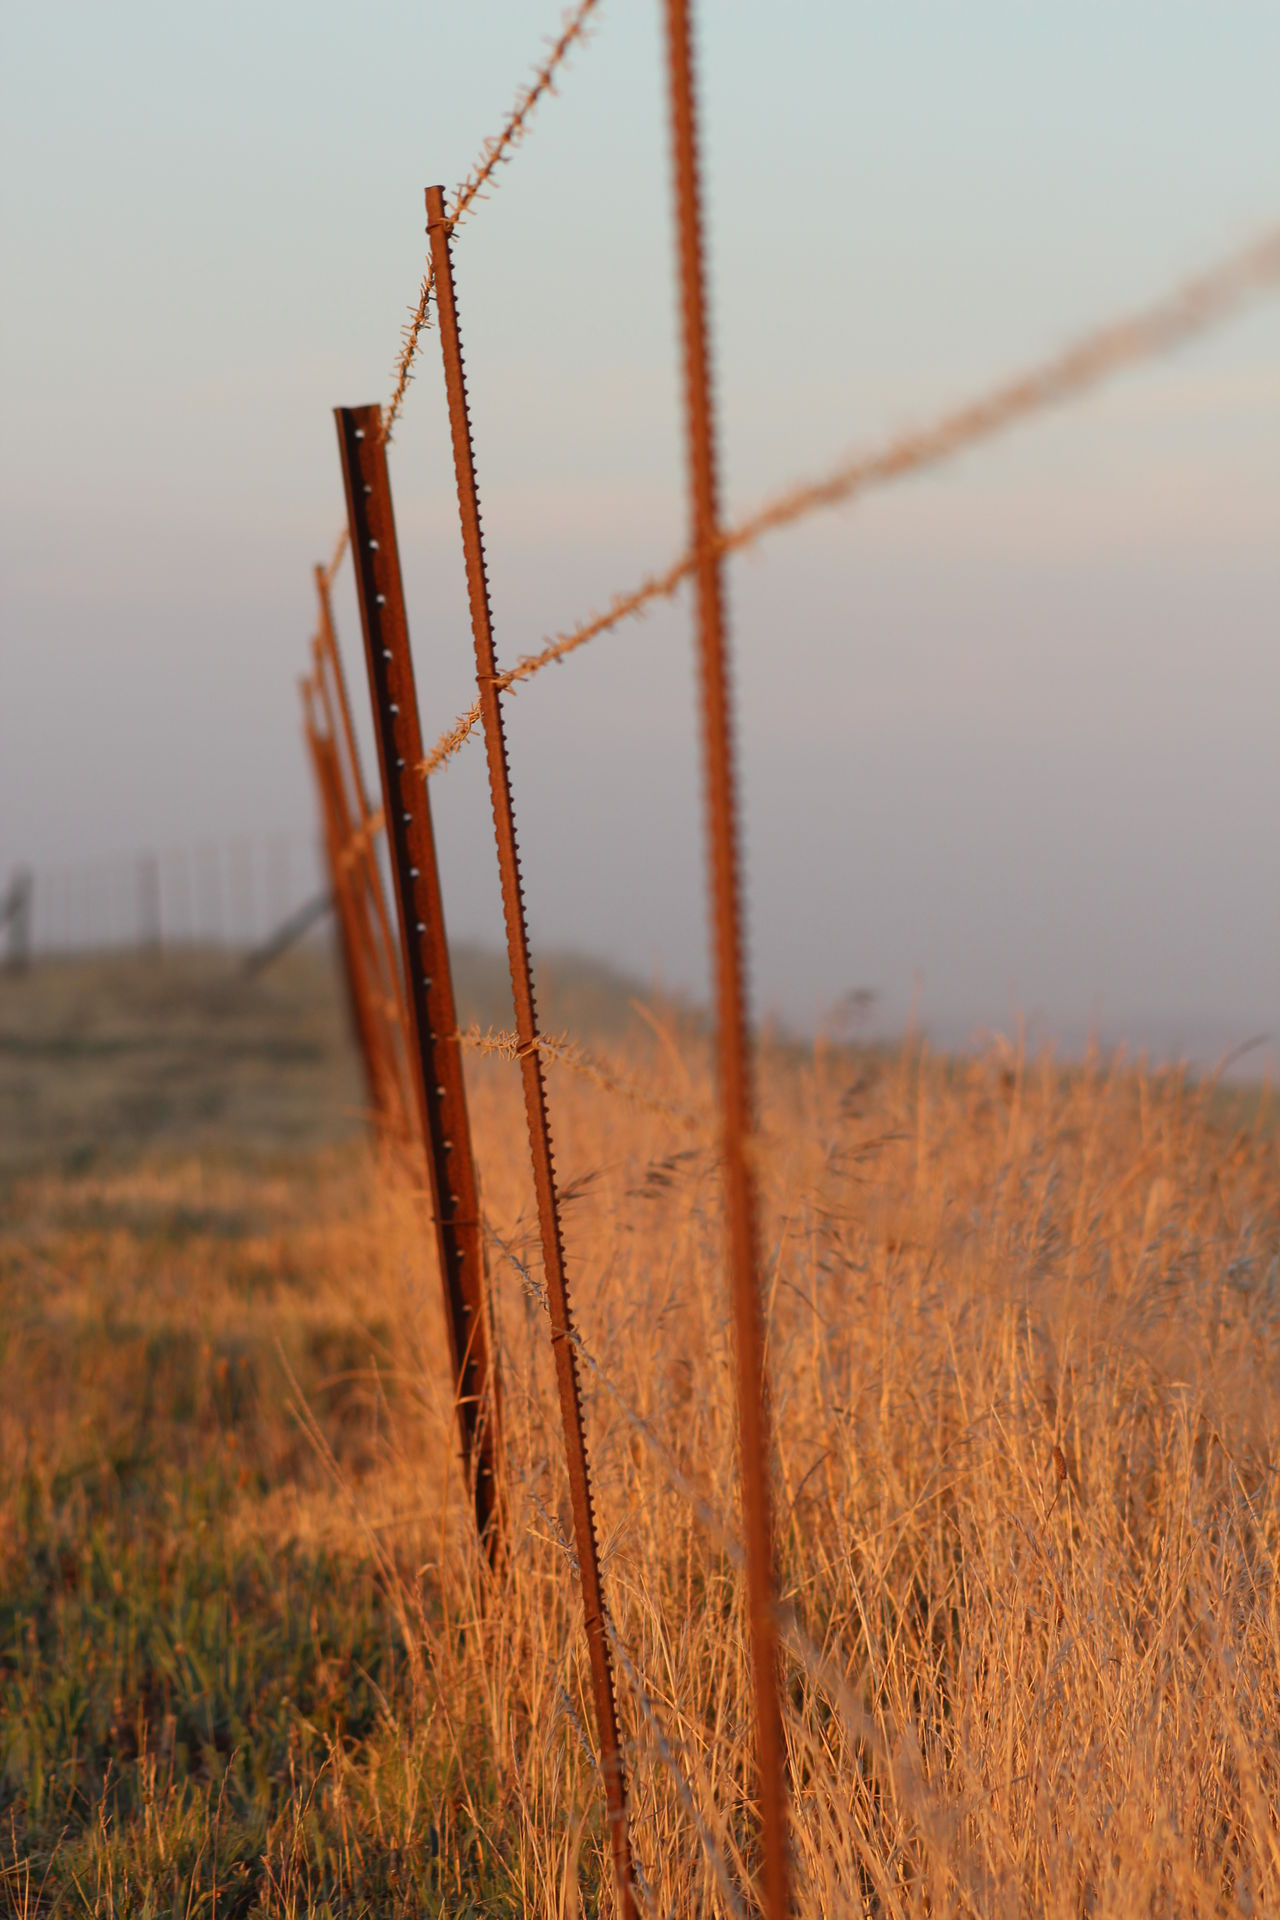 Beauty In Nature Countryside Fence Fencepost Grassland Landscape Nature Outdoors Rusted Fence Rusted Metal  Scenics Sky Sunset Wire